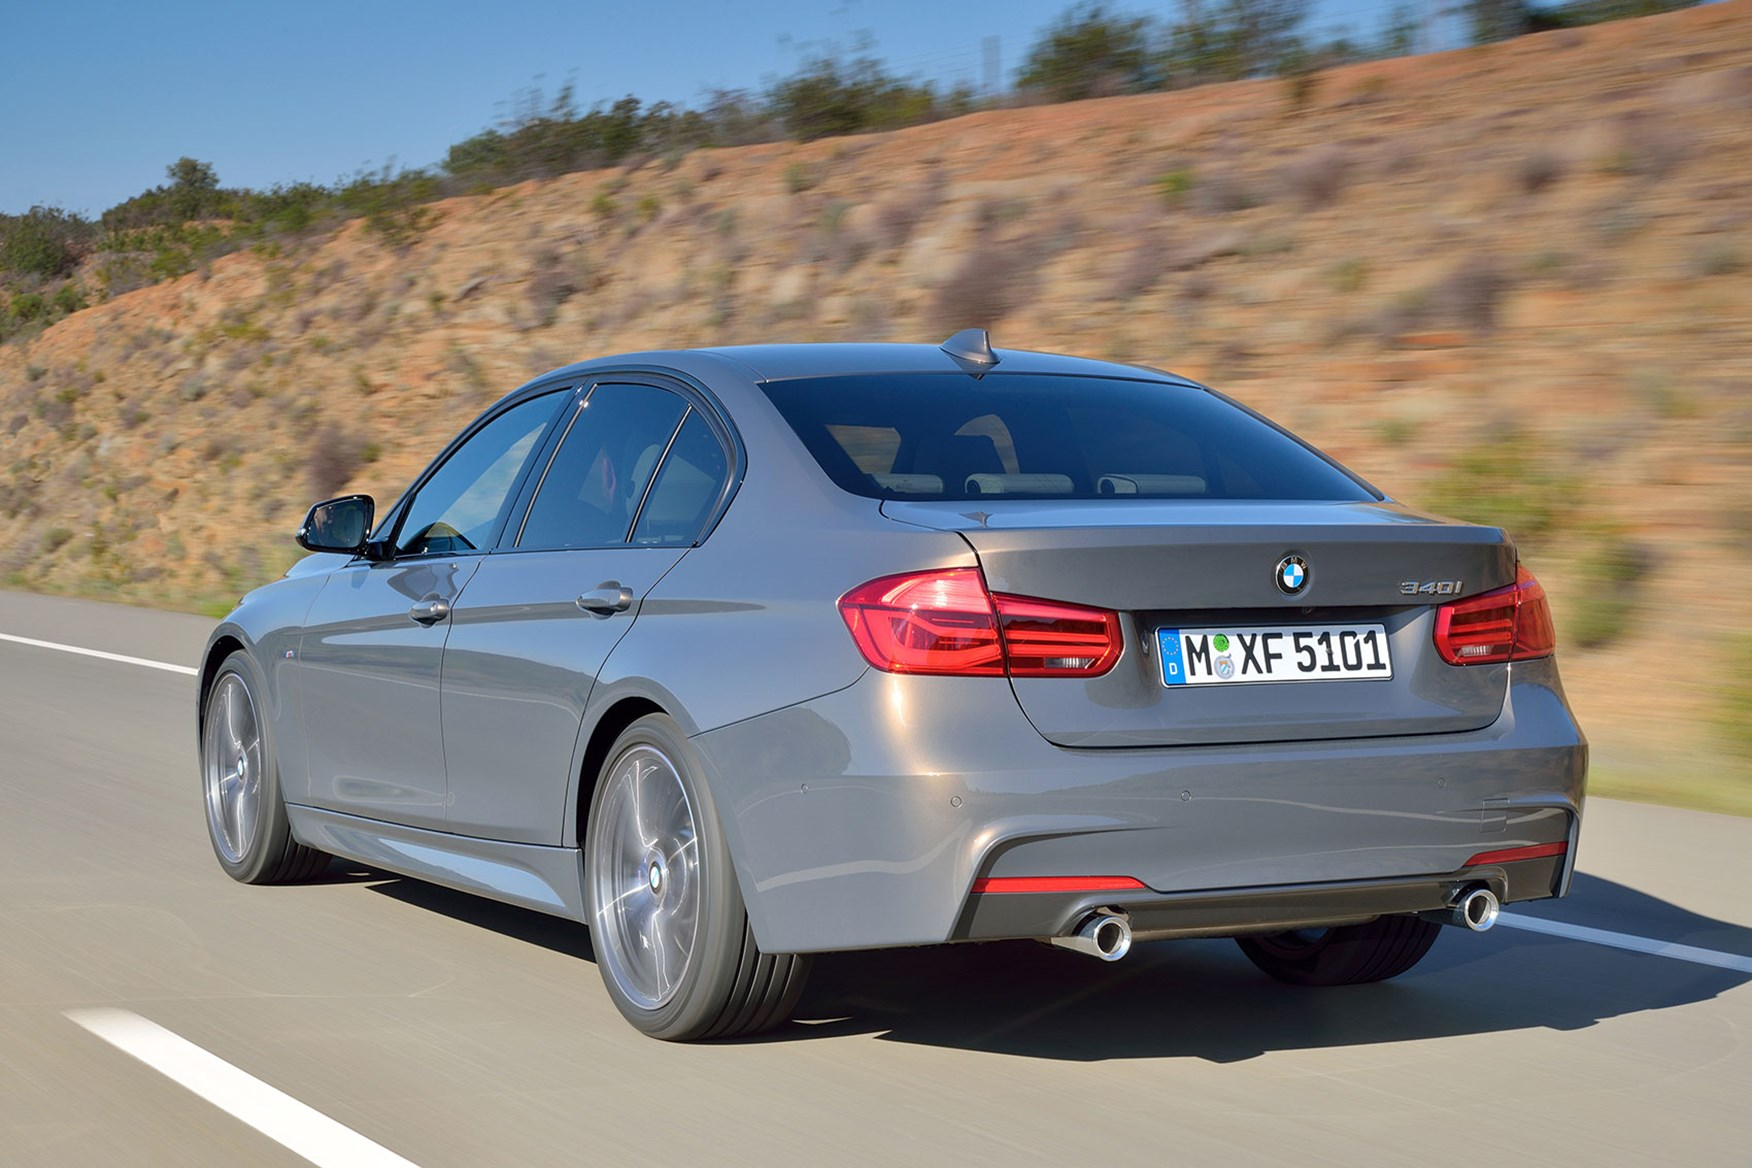 2_bmw_3 series_2015?mode=max&quality=90&scale=down new bmw 3 series facelift (2015) revealed by car magazine  at gsmx.co